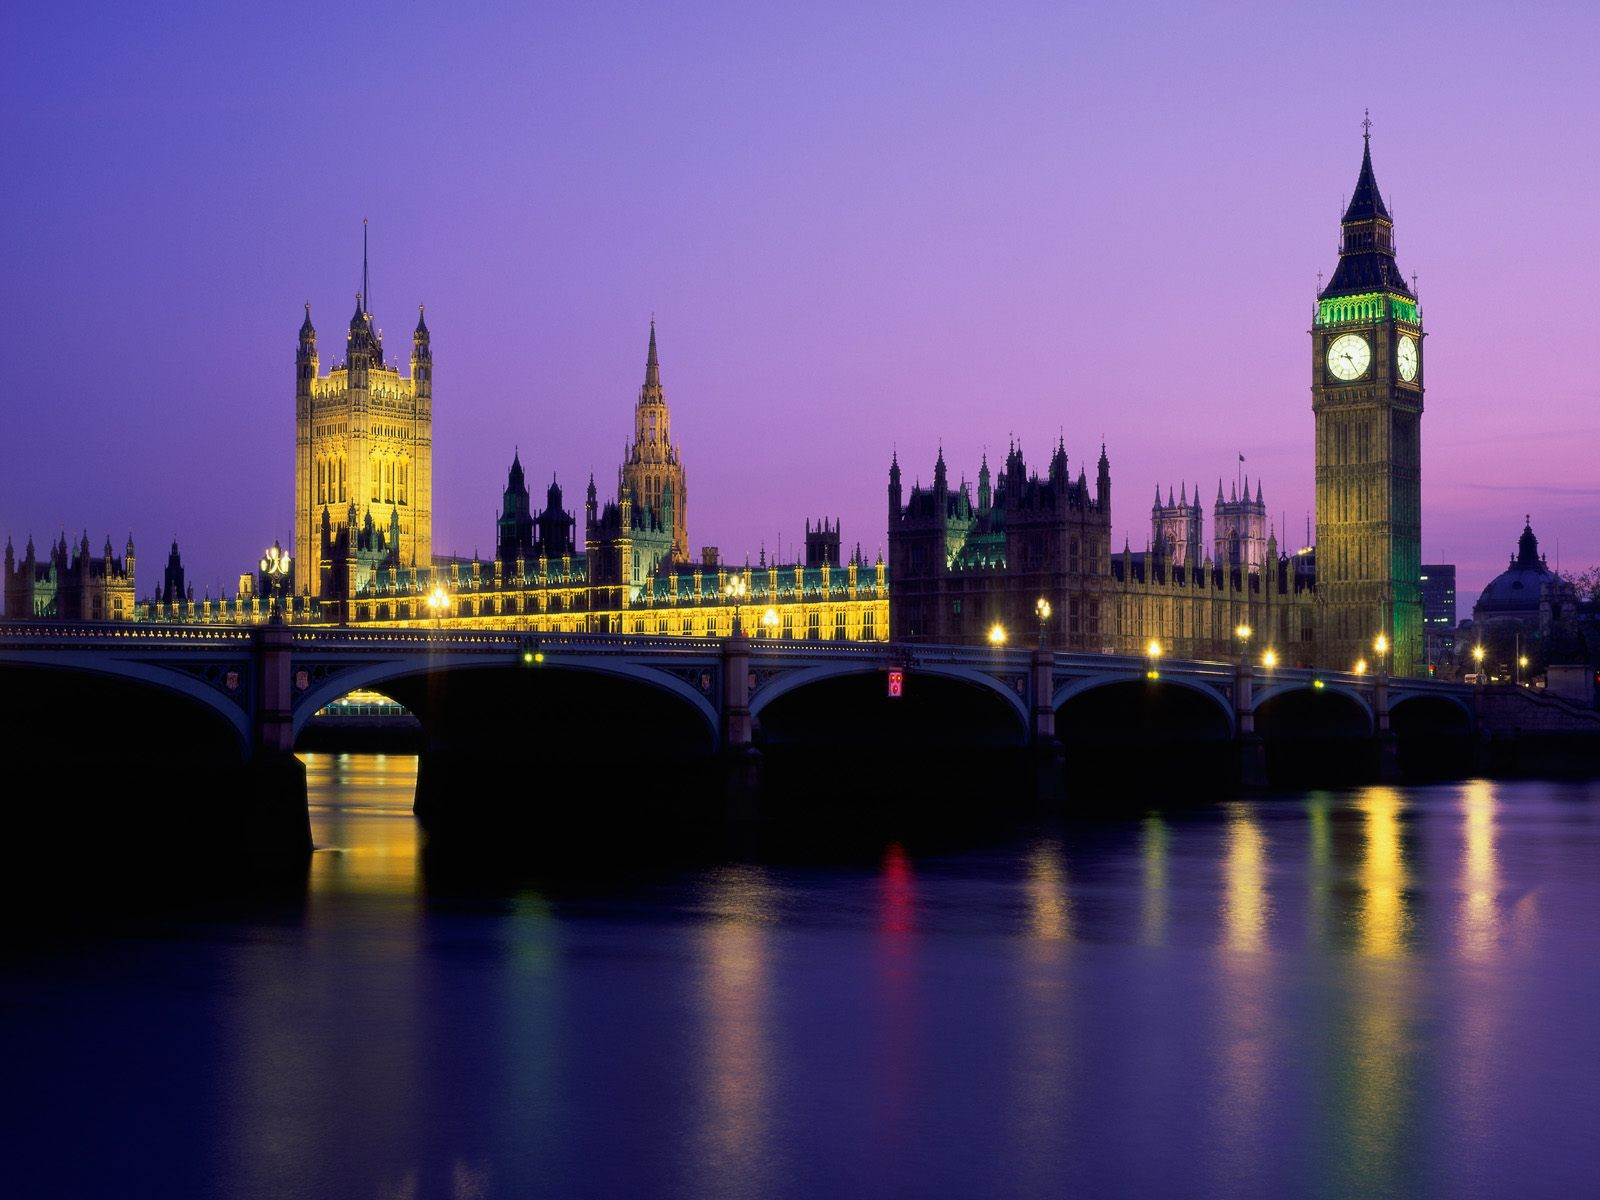 http://www.weesk.com/wallpaper/paysages-urbains/londres/big-ben-londres-paysages-urbains.jpg